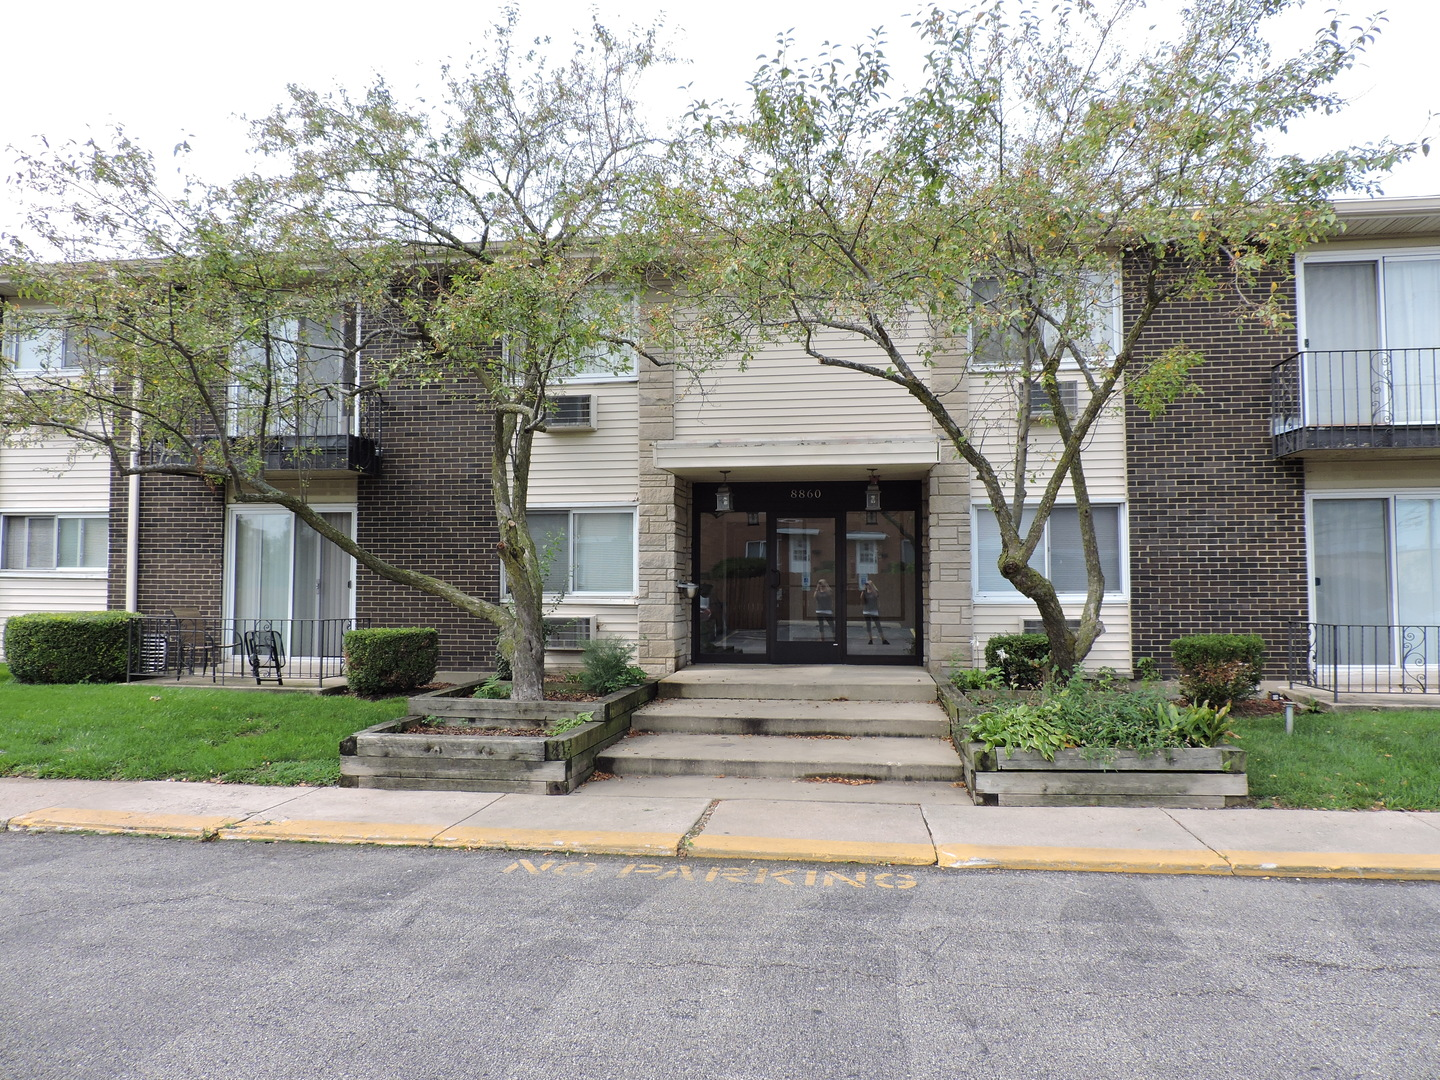 8860 North Western Avenue, Des Plaines in Cook County, IL 60016 Home for Sale